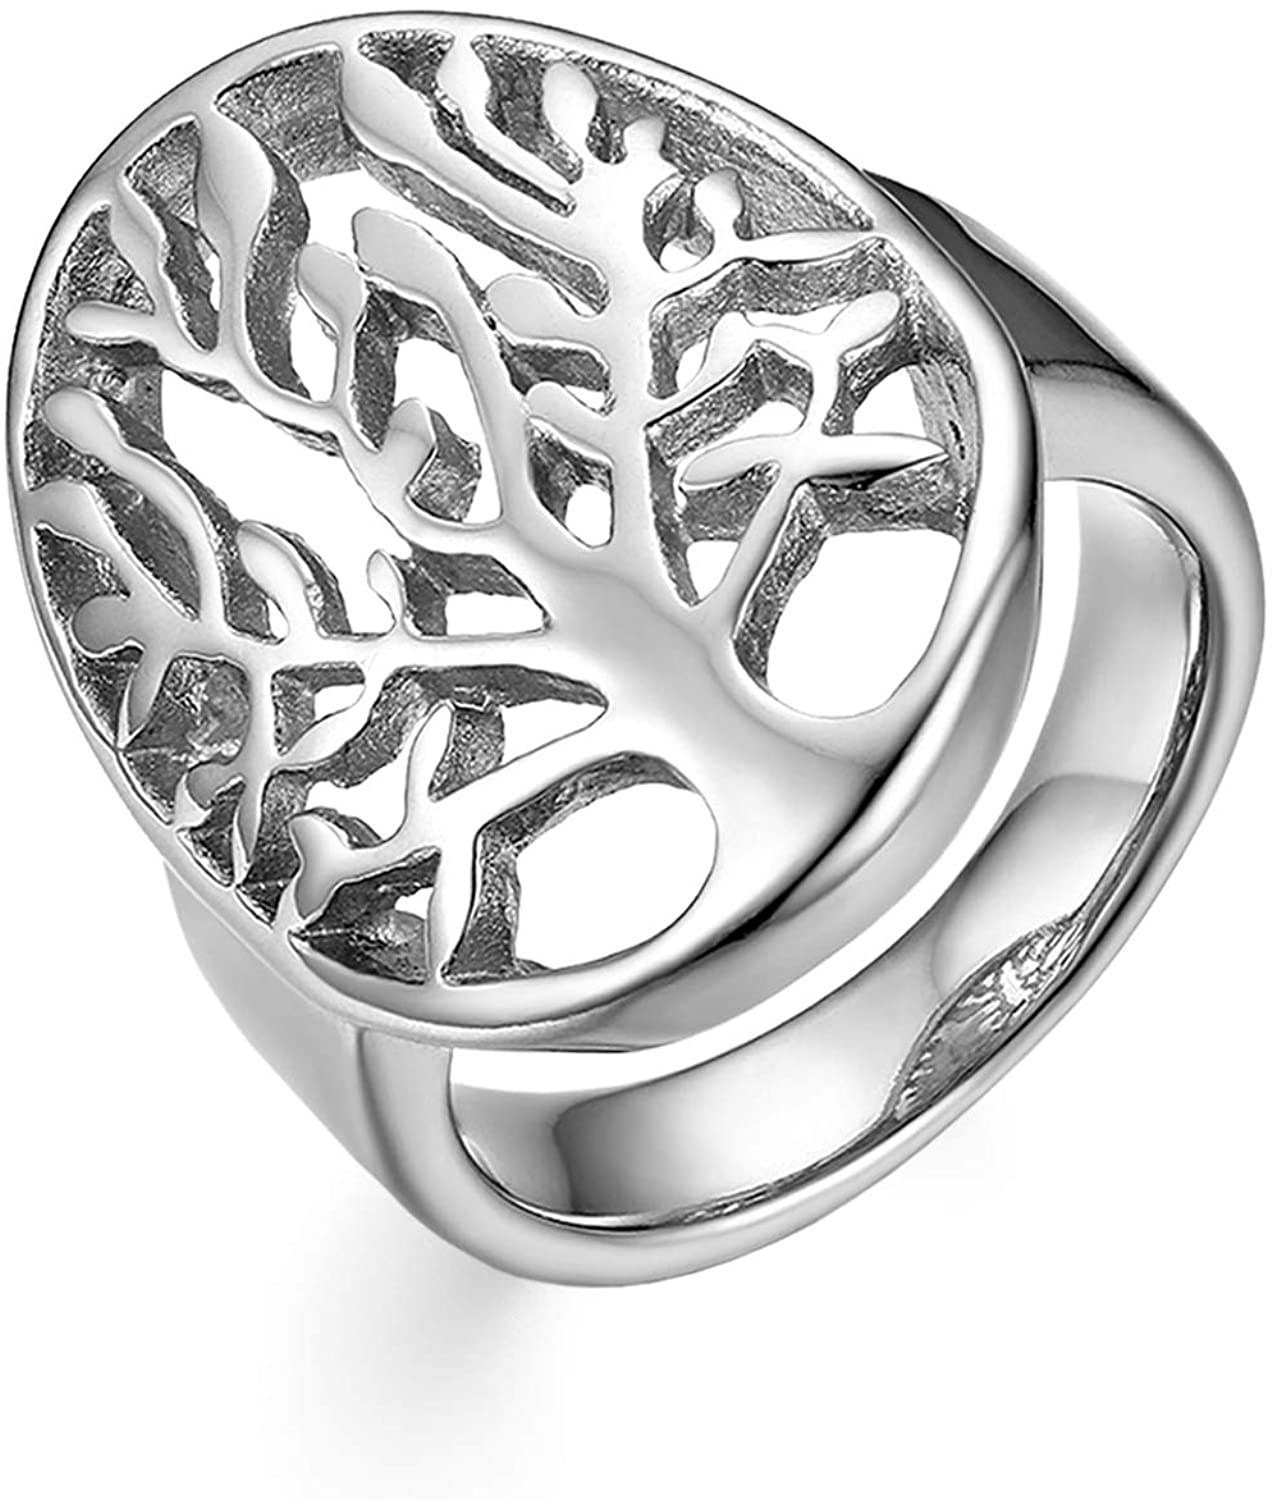 OIDEA Stainless Steel Hollow Tree of Life Wedding Rings for Women,Size 5